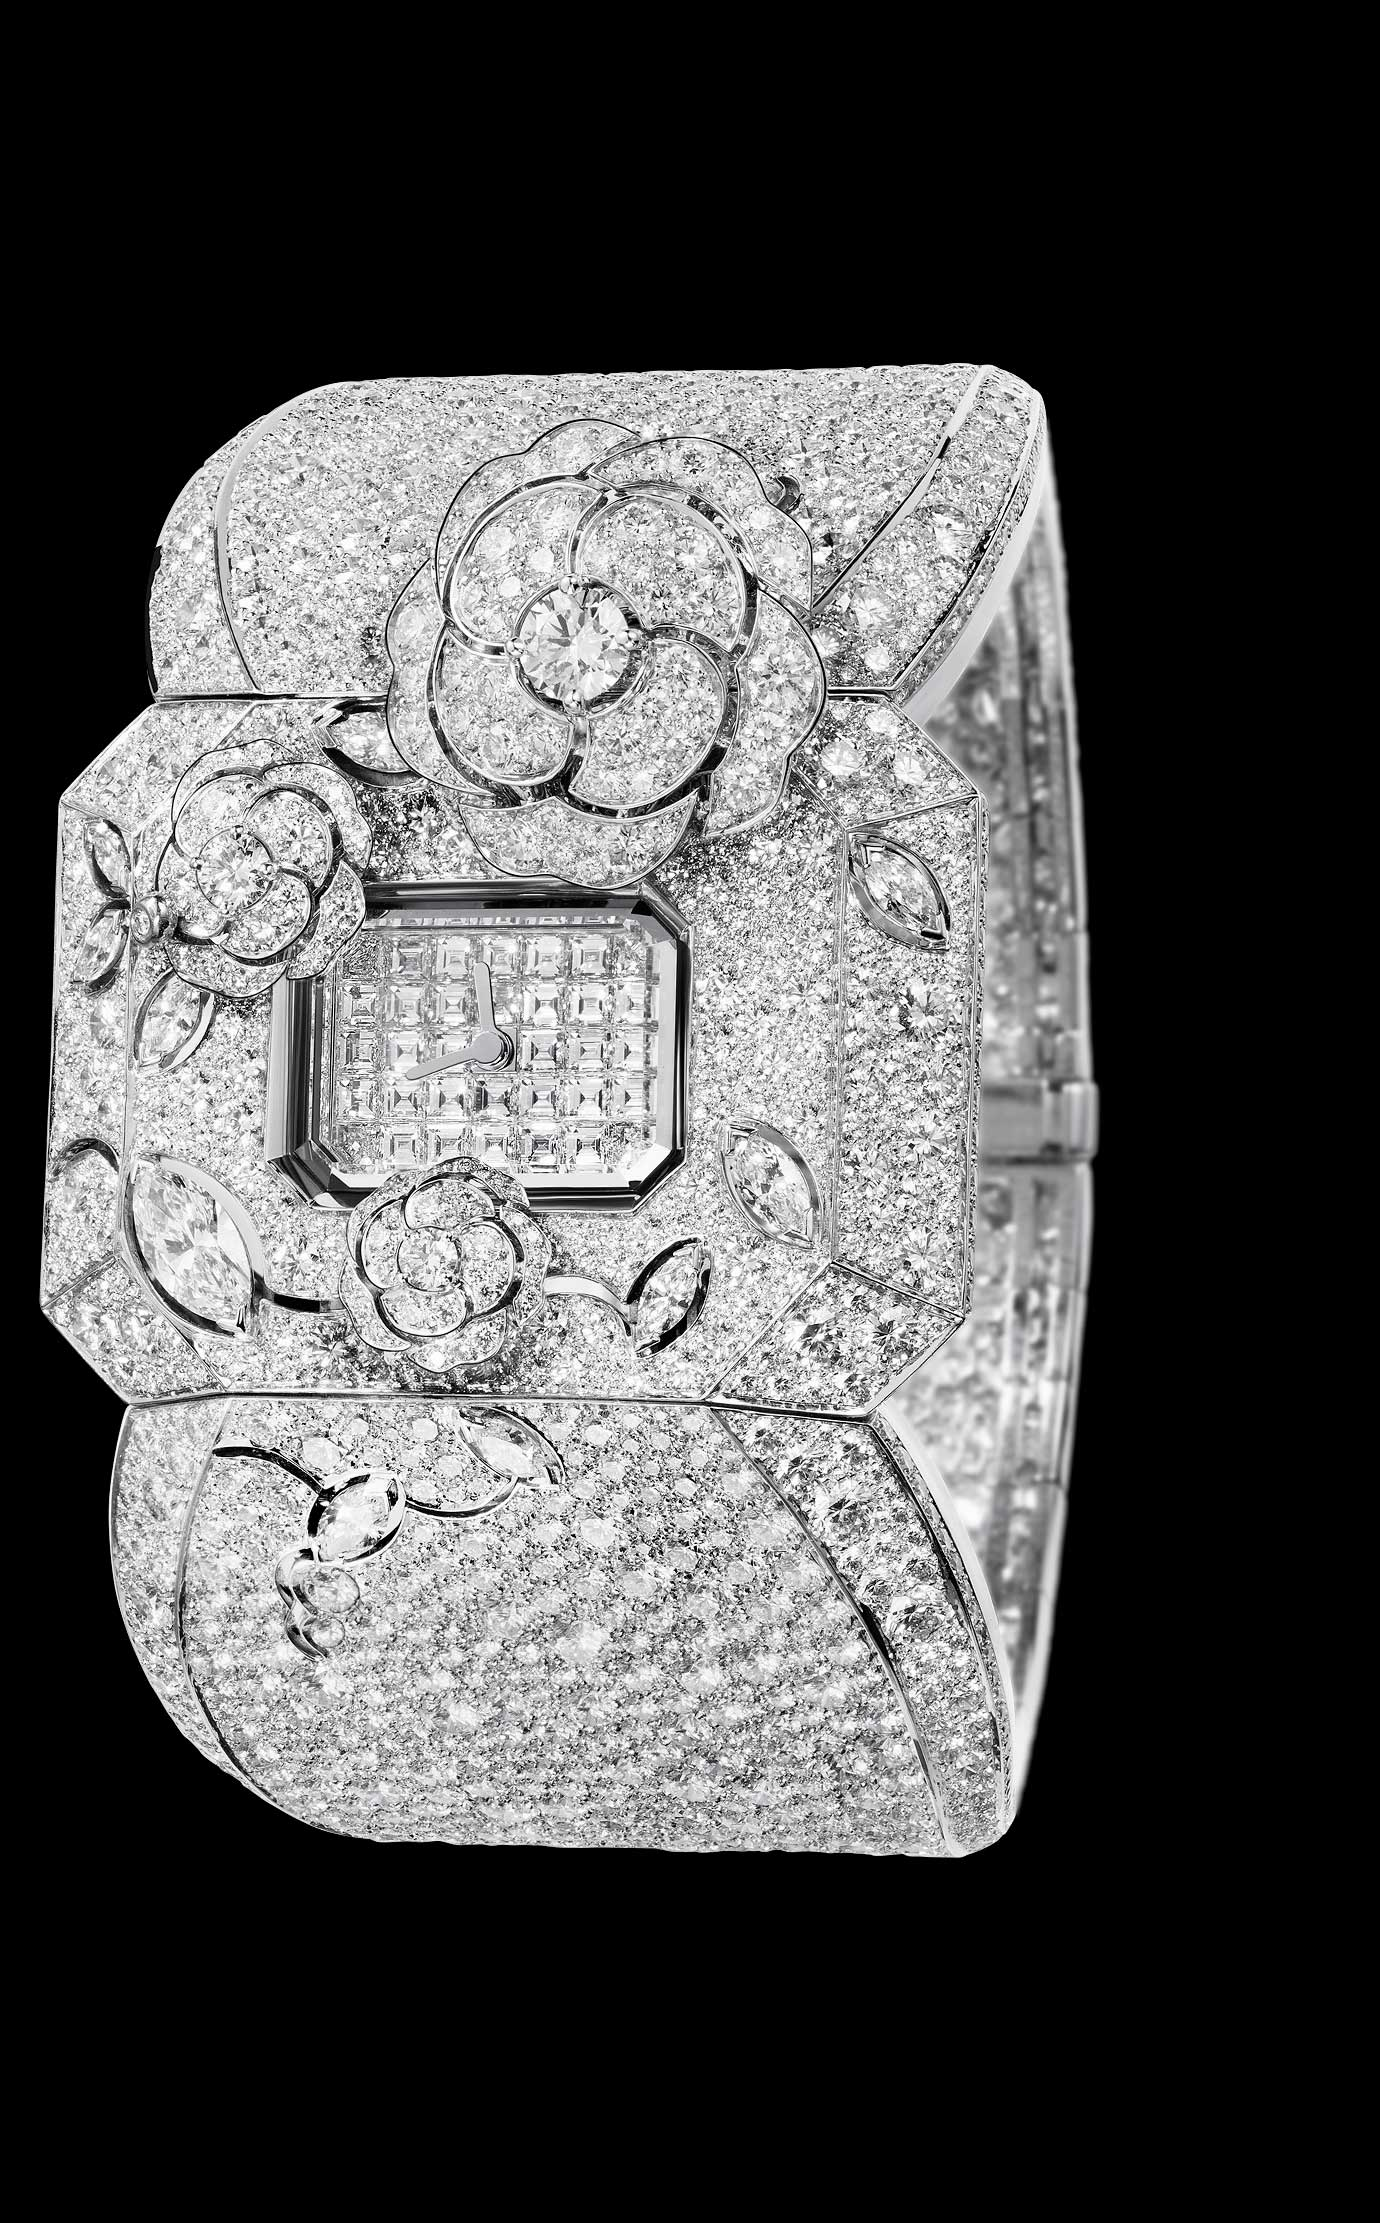 Les Eternelles de CHANEL. Watch in 18K white gold and diamonds. High-precision quartz movement. - Open